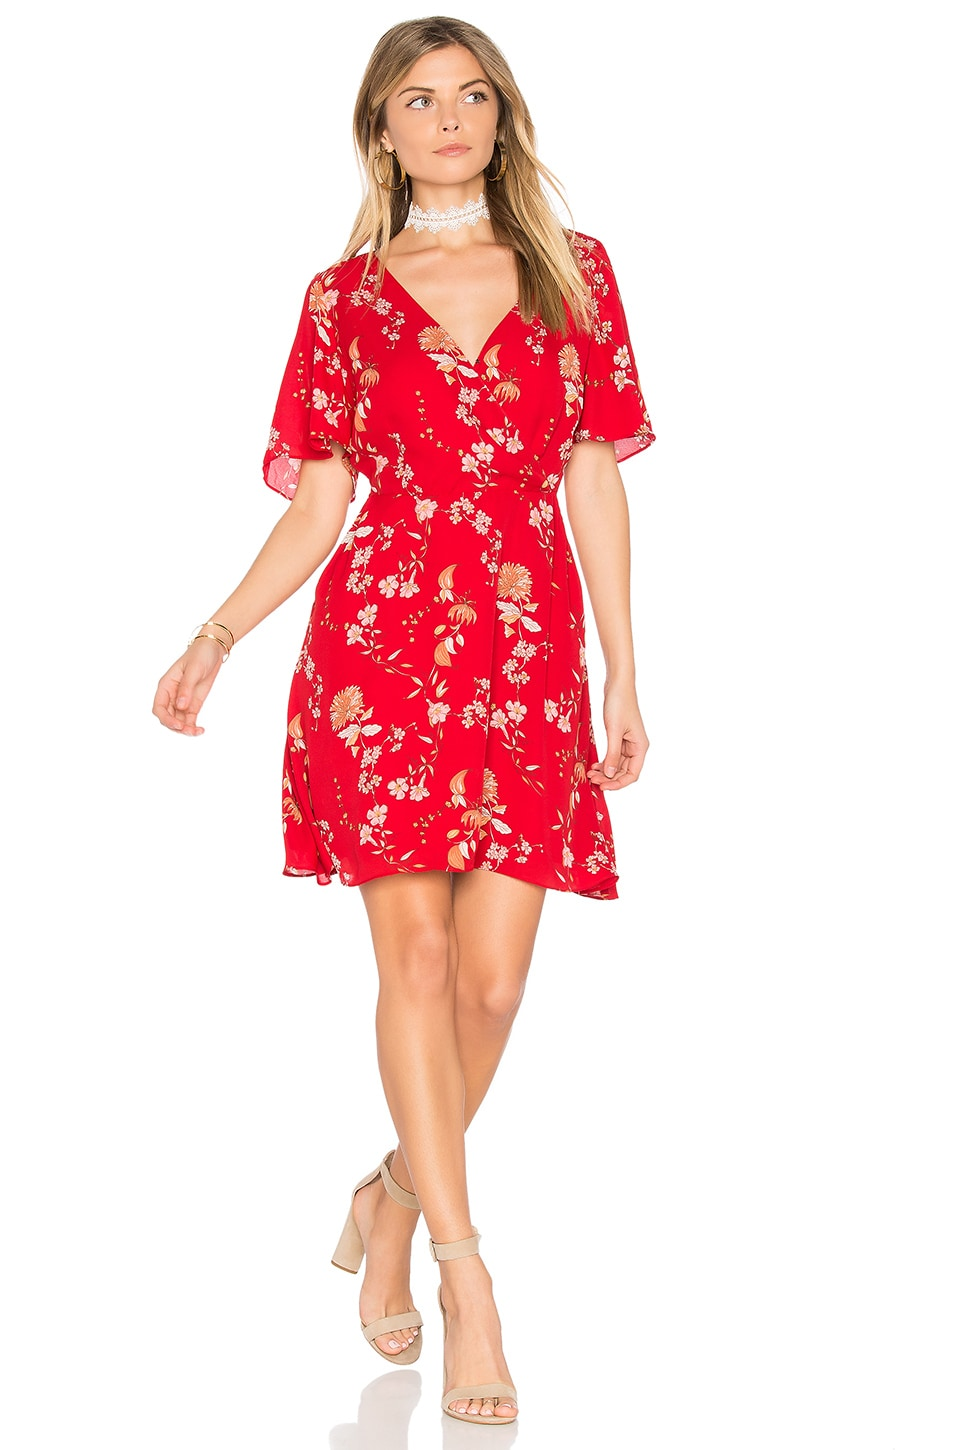 BB Dakota Laselle Dress in Red